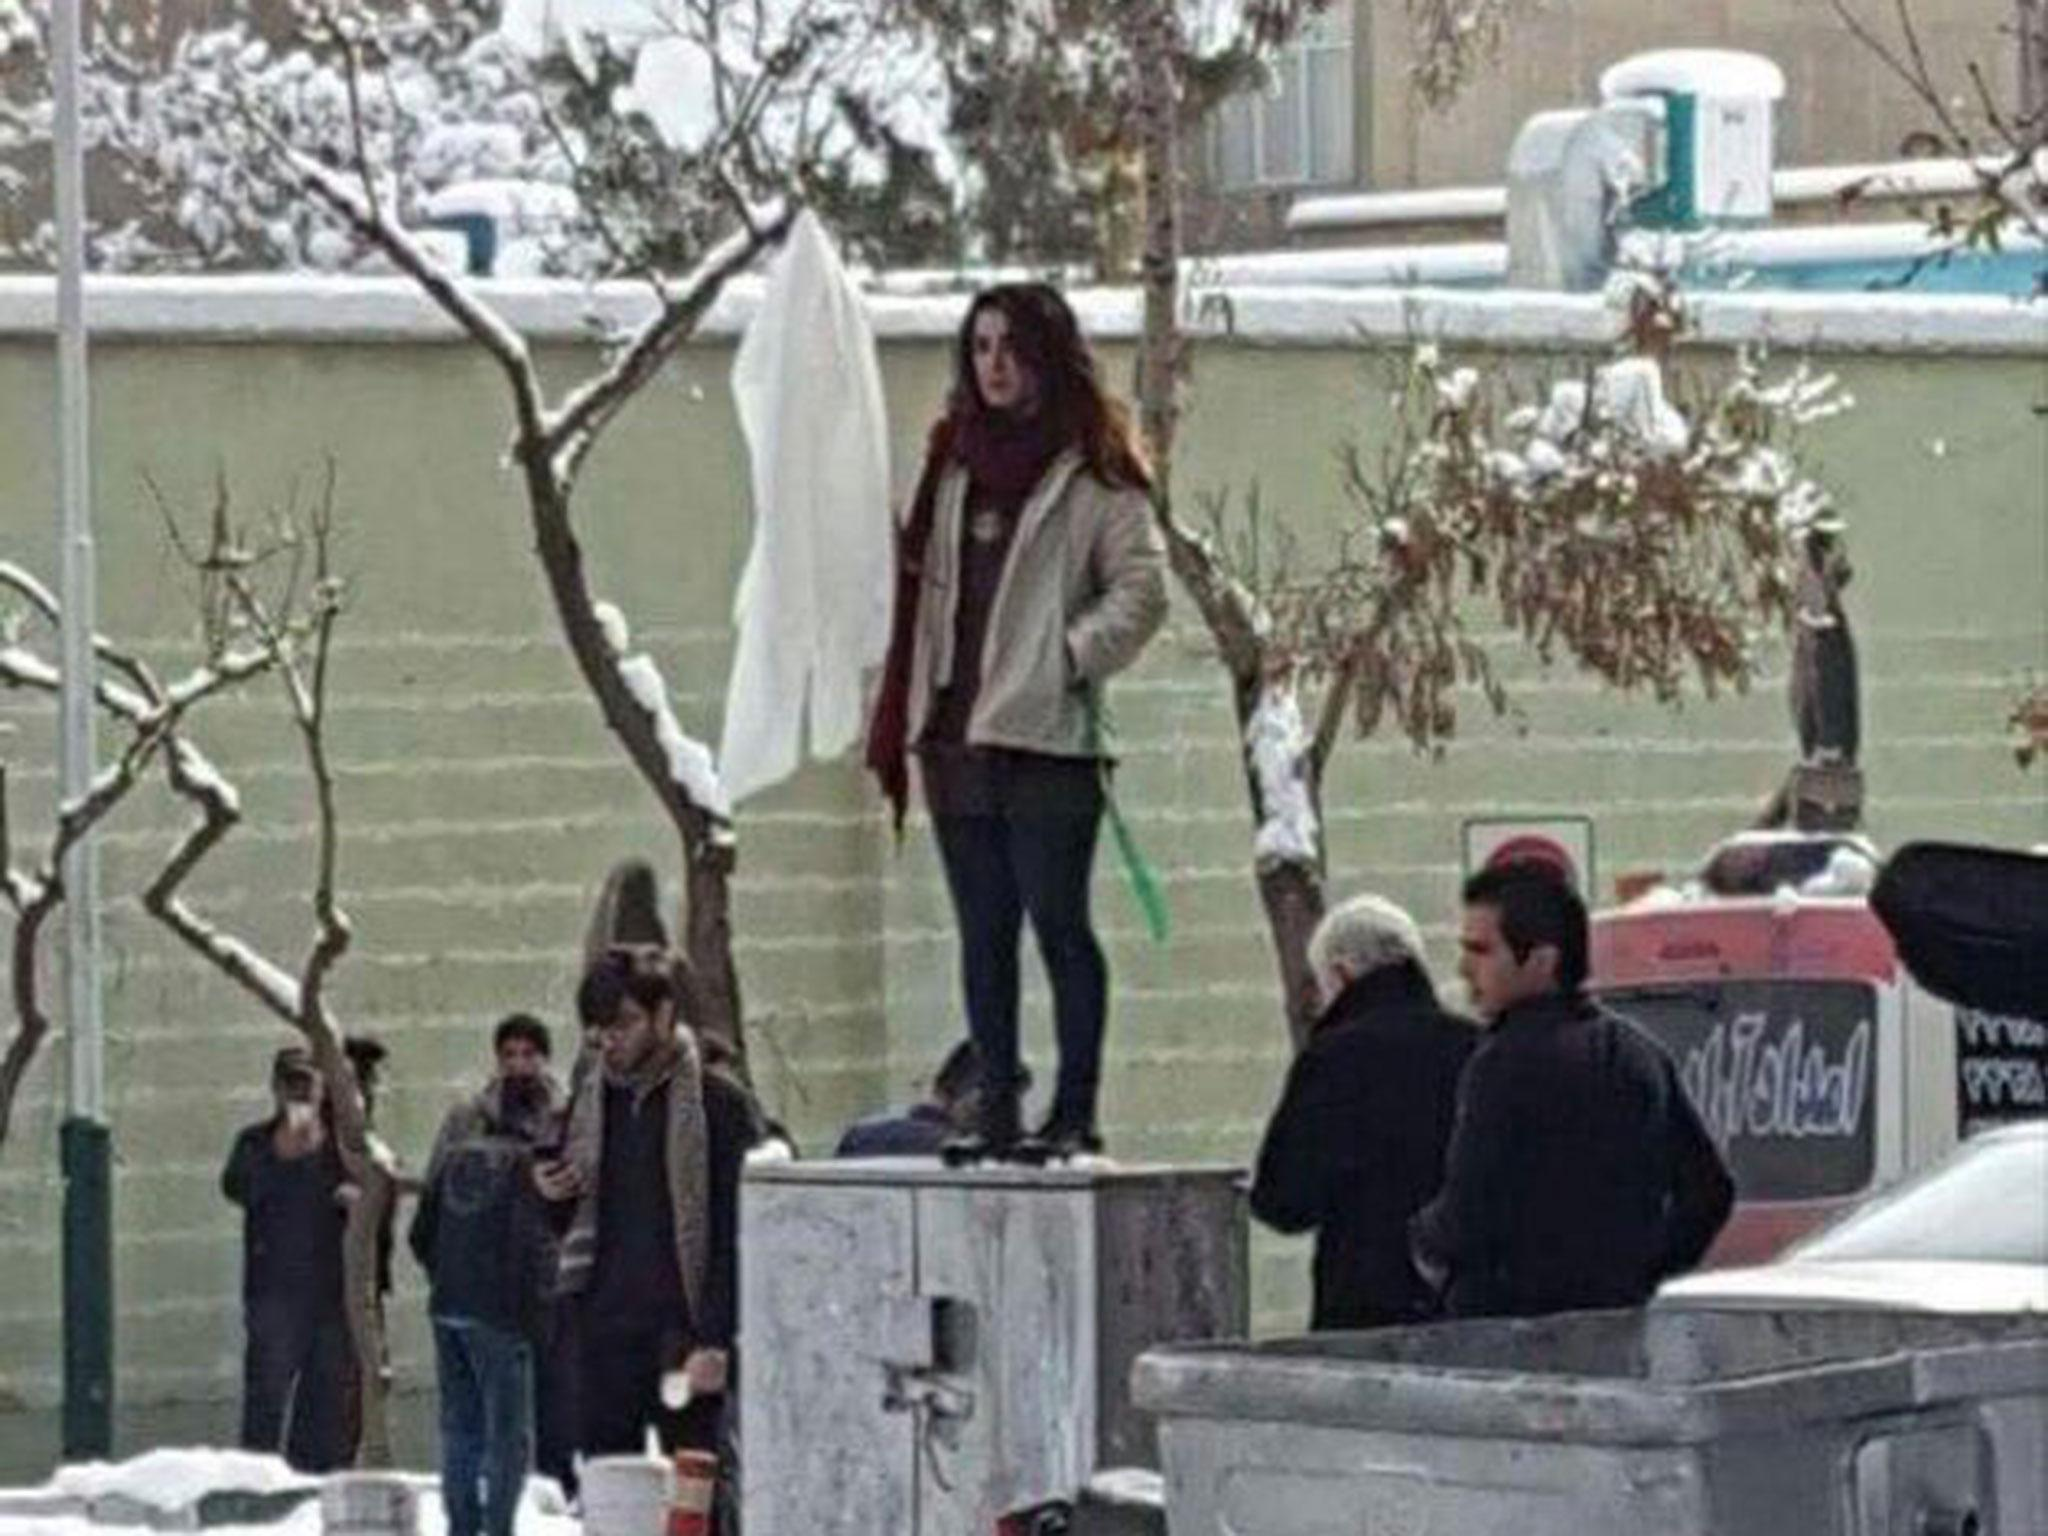 Iran Sex Videos Download Simple iranian women protest hijab as defiant headscarf demonstrations